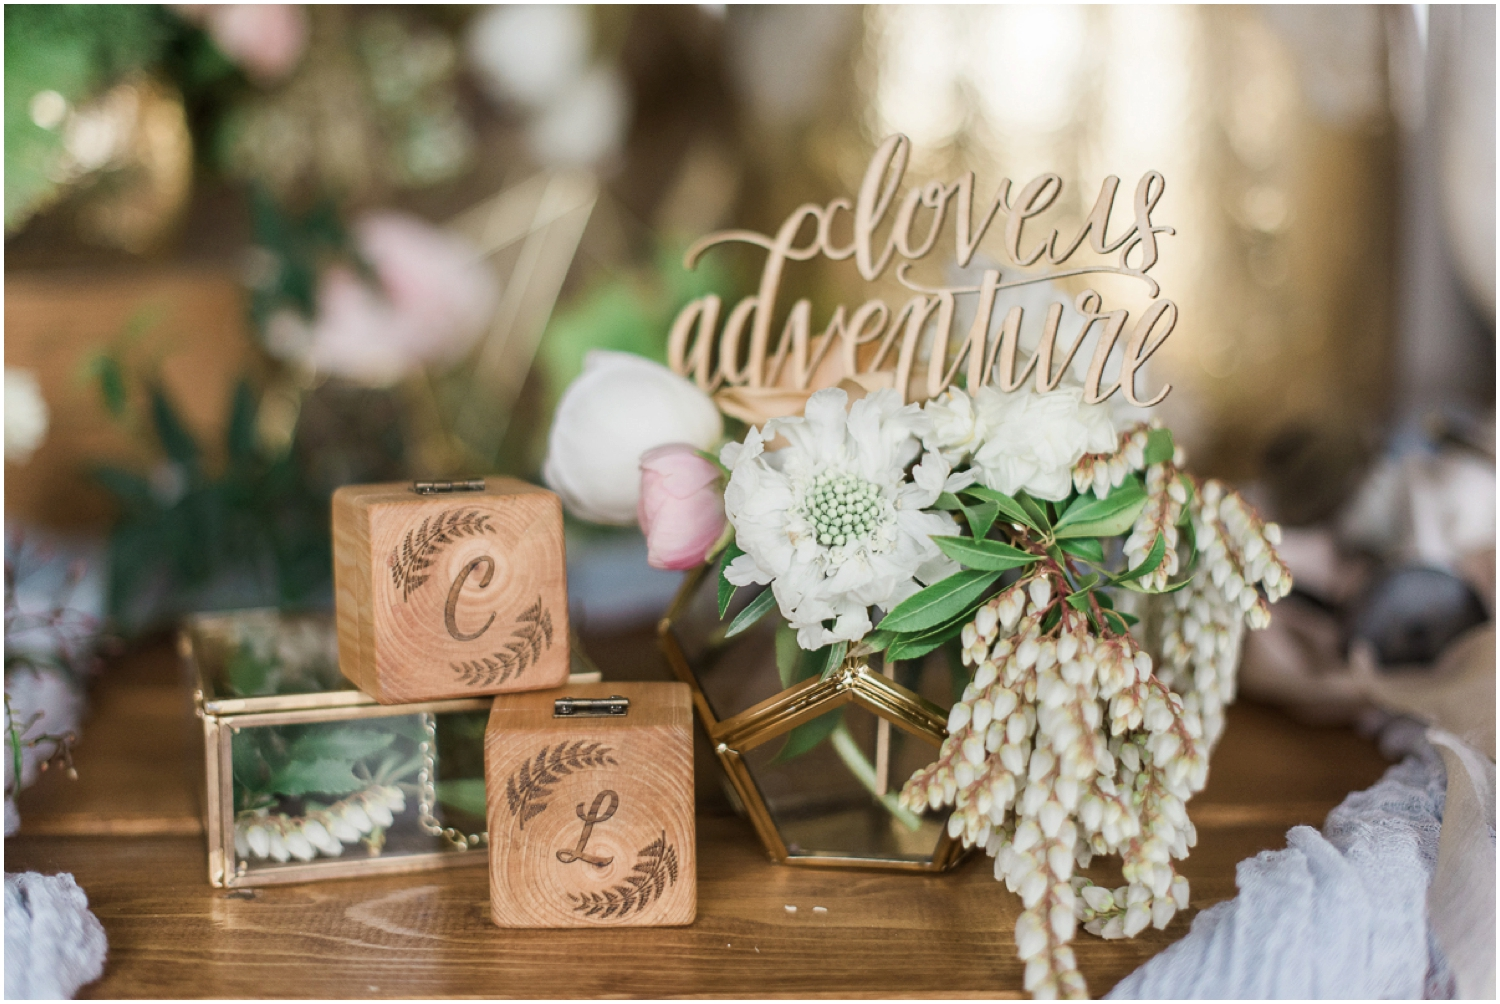 Dairyland french rustic lesbian 2 brides wedding. Romantic. Feminine. Calligraphy. Ferns. Candlelight